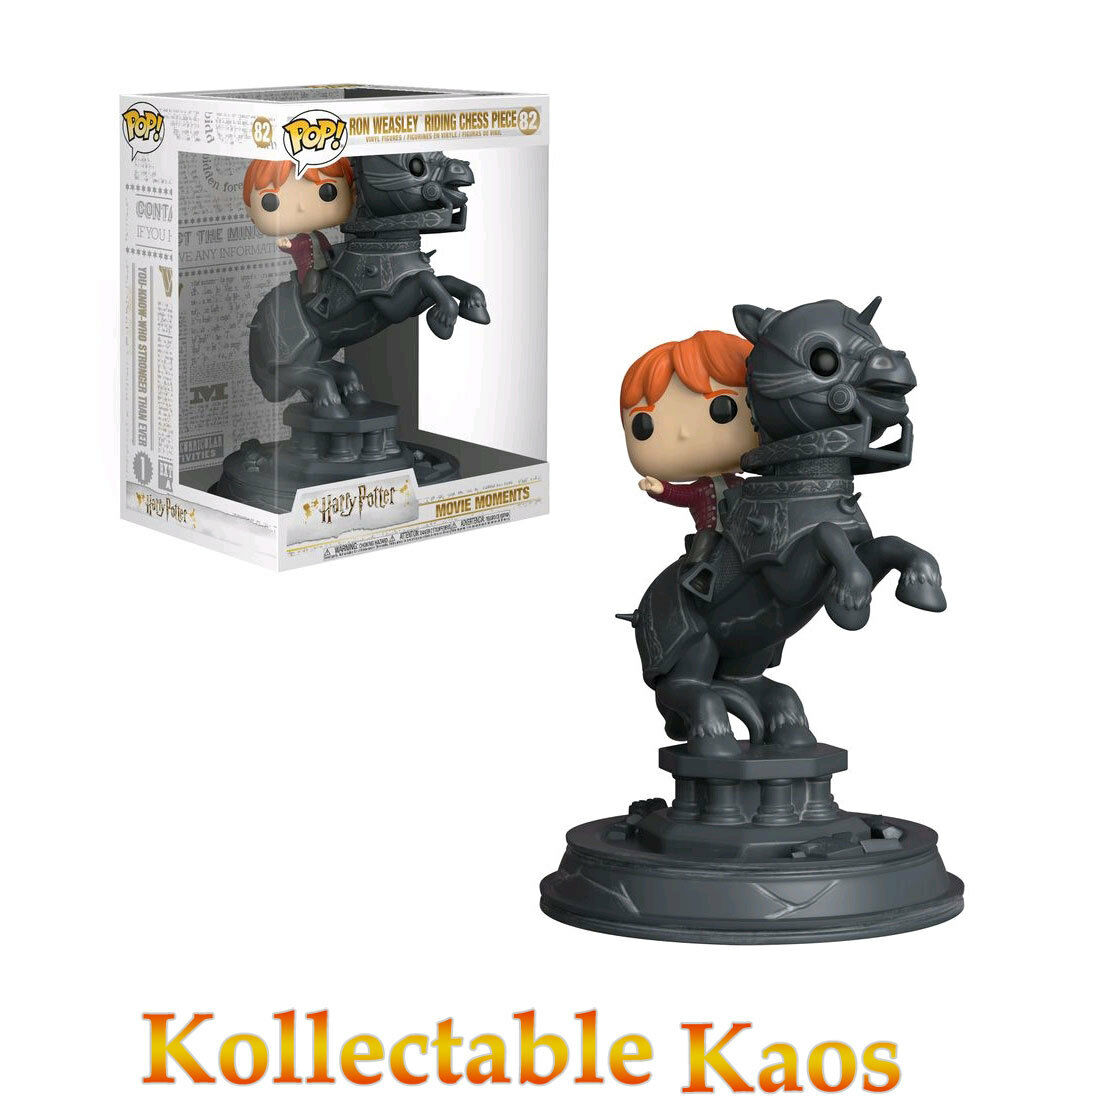 Harry Potter - Ron Weasley Riding Chess Piece Movie Moments Pop  Vinyl